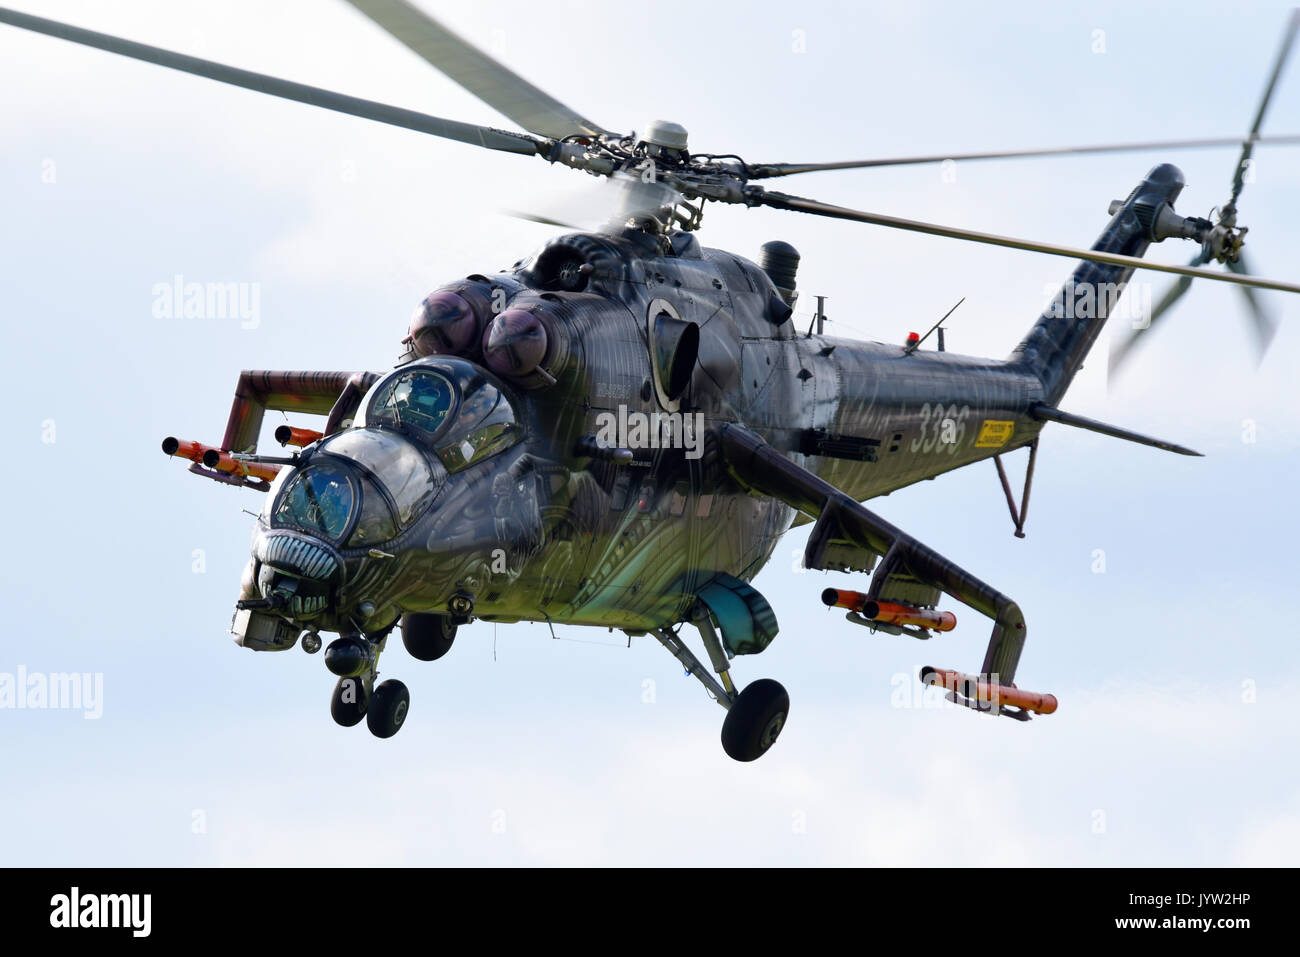 mil-mi-24-mi-35-hind-gunship-attack-helicopter-of-czech-air-force-JYW2HP.jpg